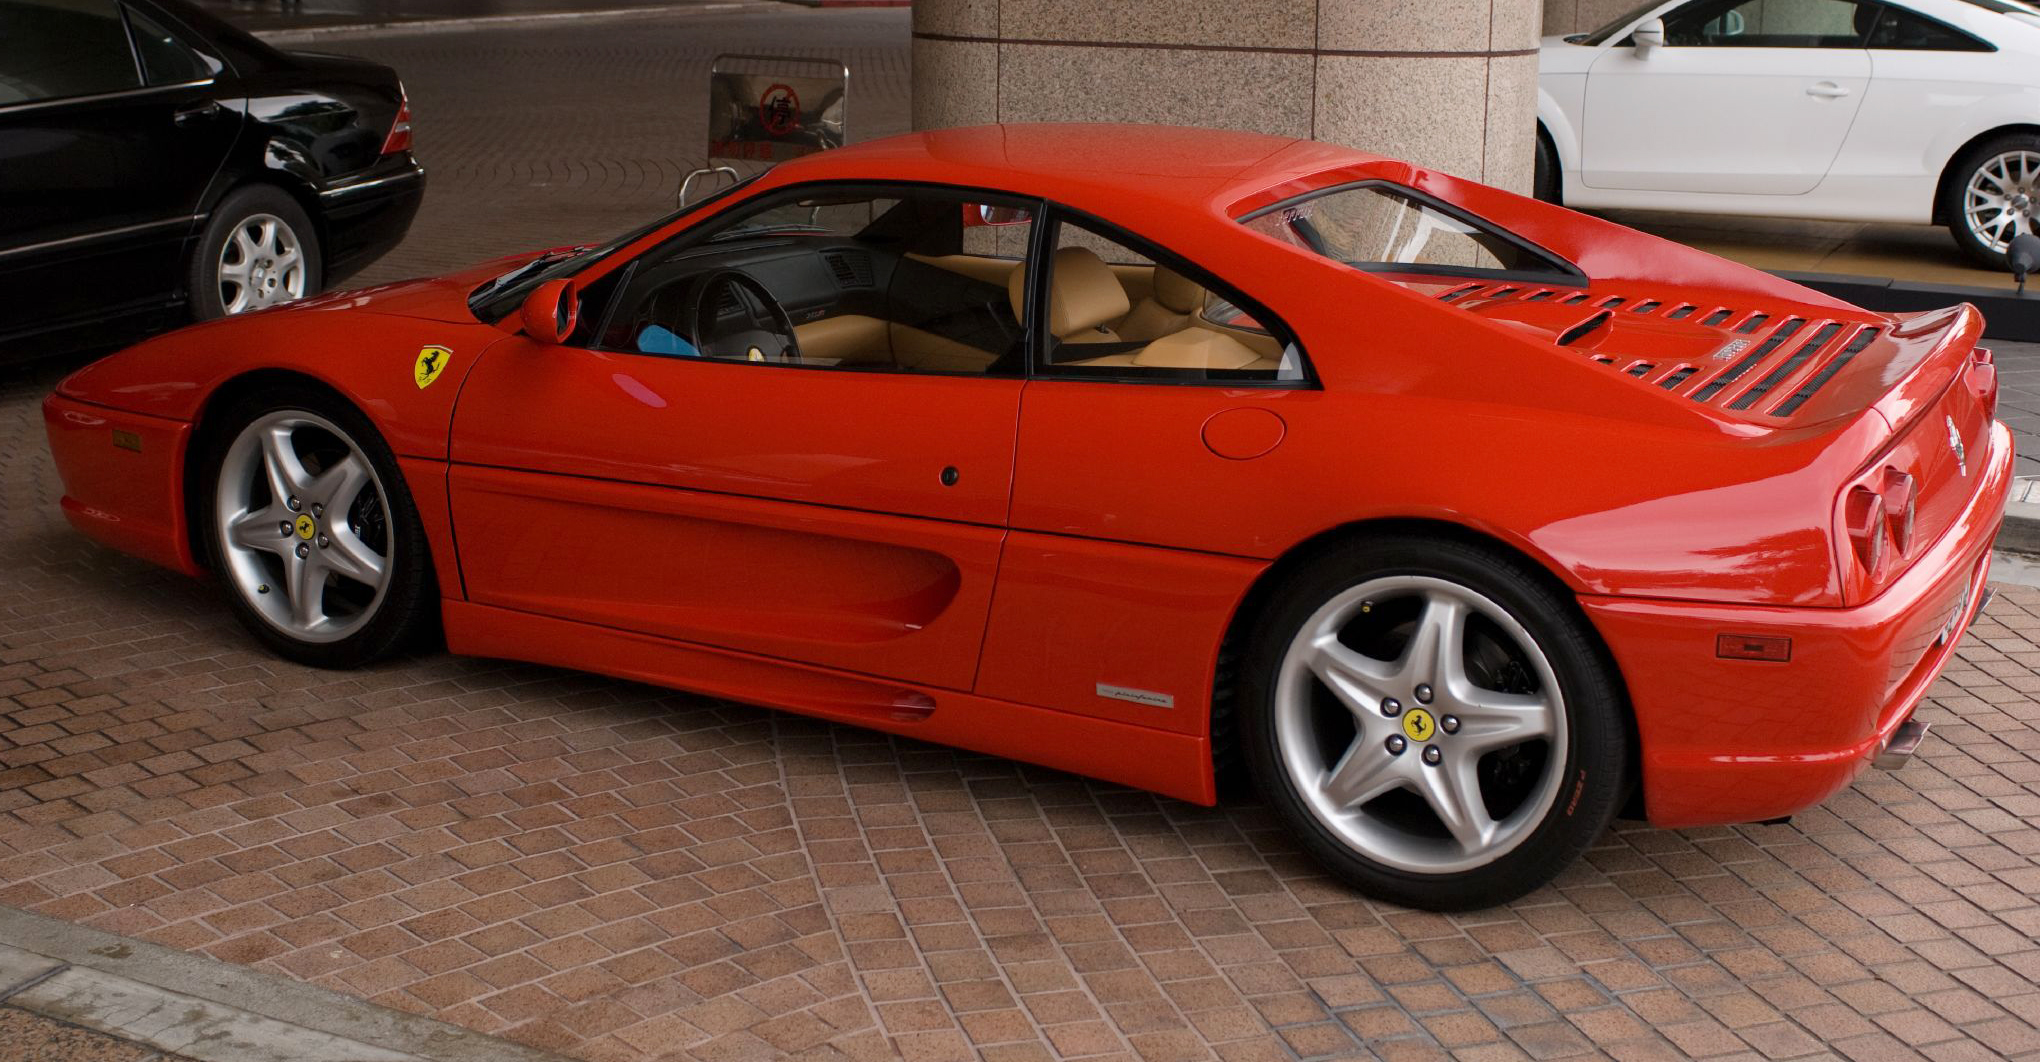 File F355 Berlinetta In Taipei Jpg Wikimedia Commons